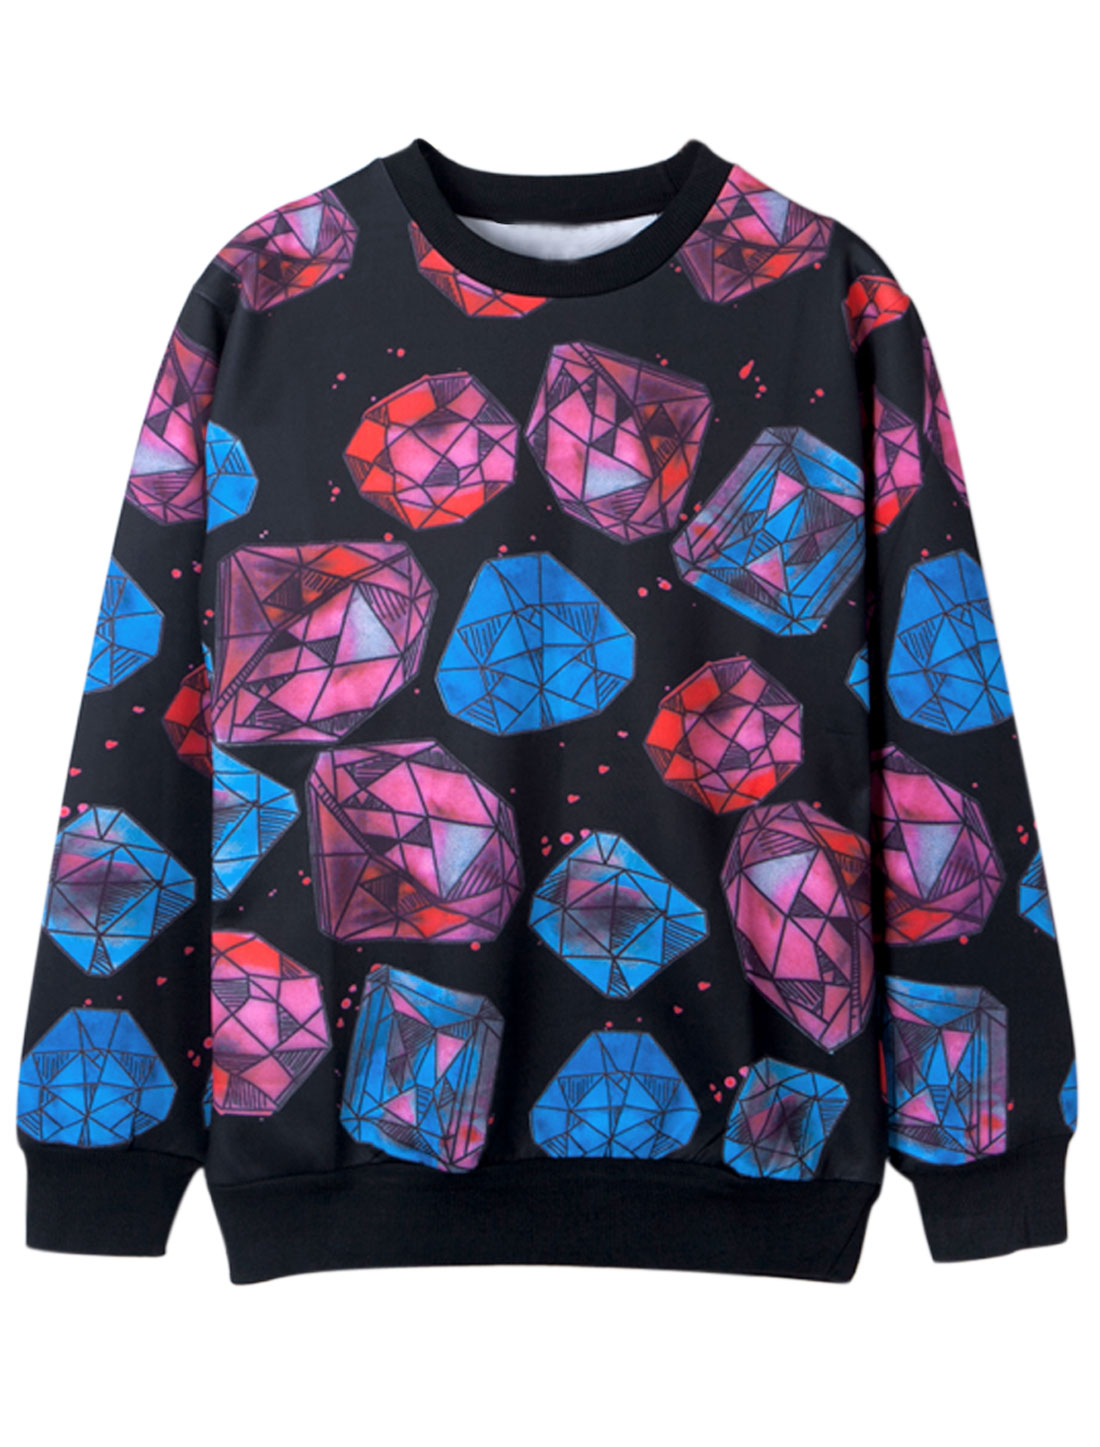 Men Pullover Long Sleeves All Over Diamond Print Stylish Sweatshirt Black M